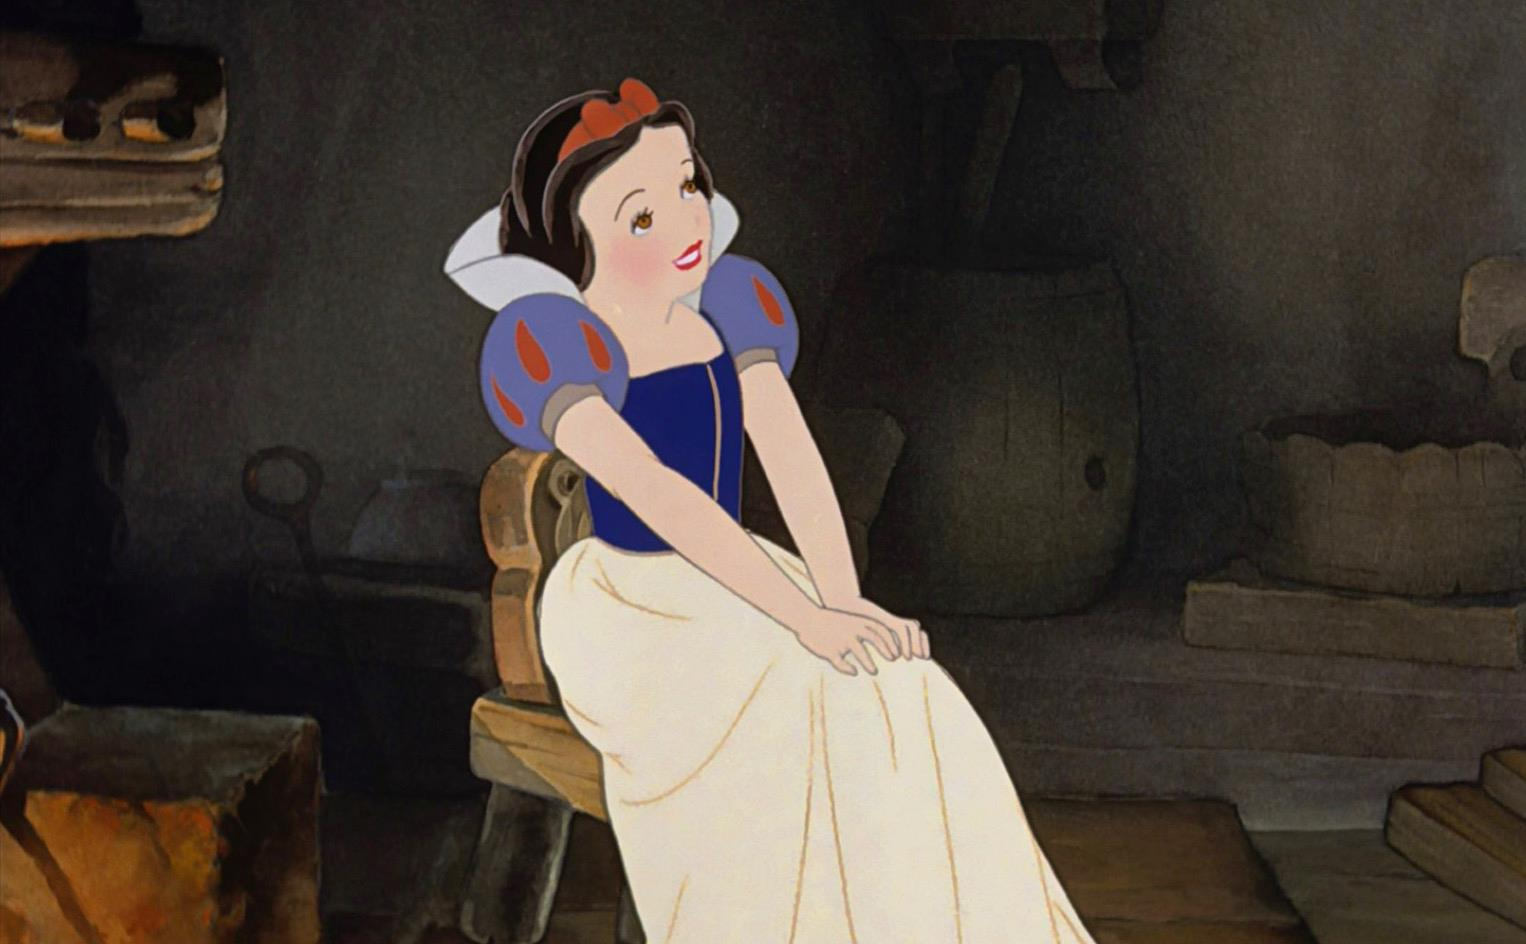 facebook.com  Disney's portrayal of princesses may be more influential than some may believe.